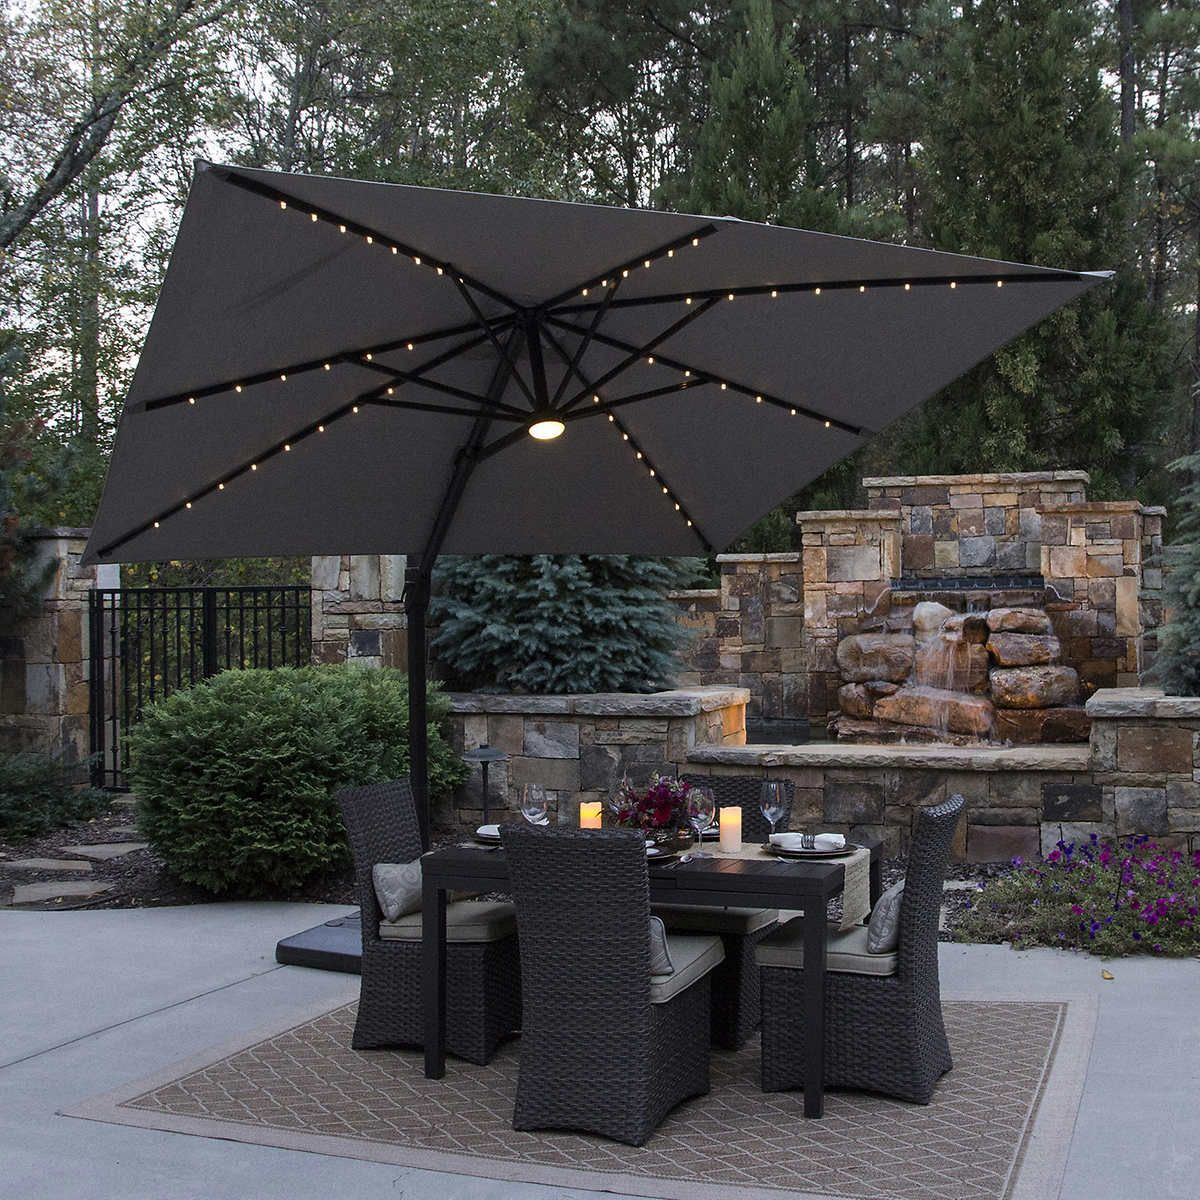 Solar Powered Lit Patio Umbrella Rooftop Patio Design Offset Patio Umbrella Patio Umbrella